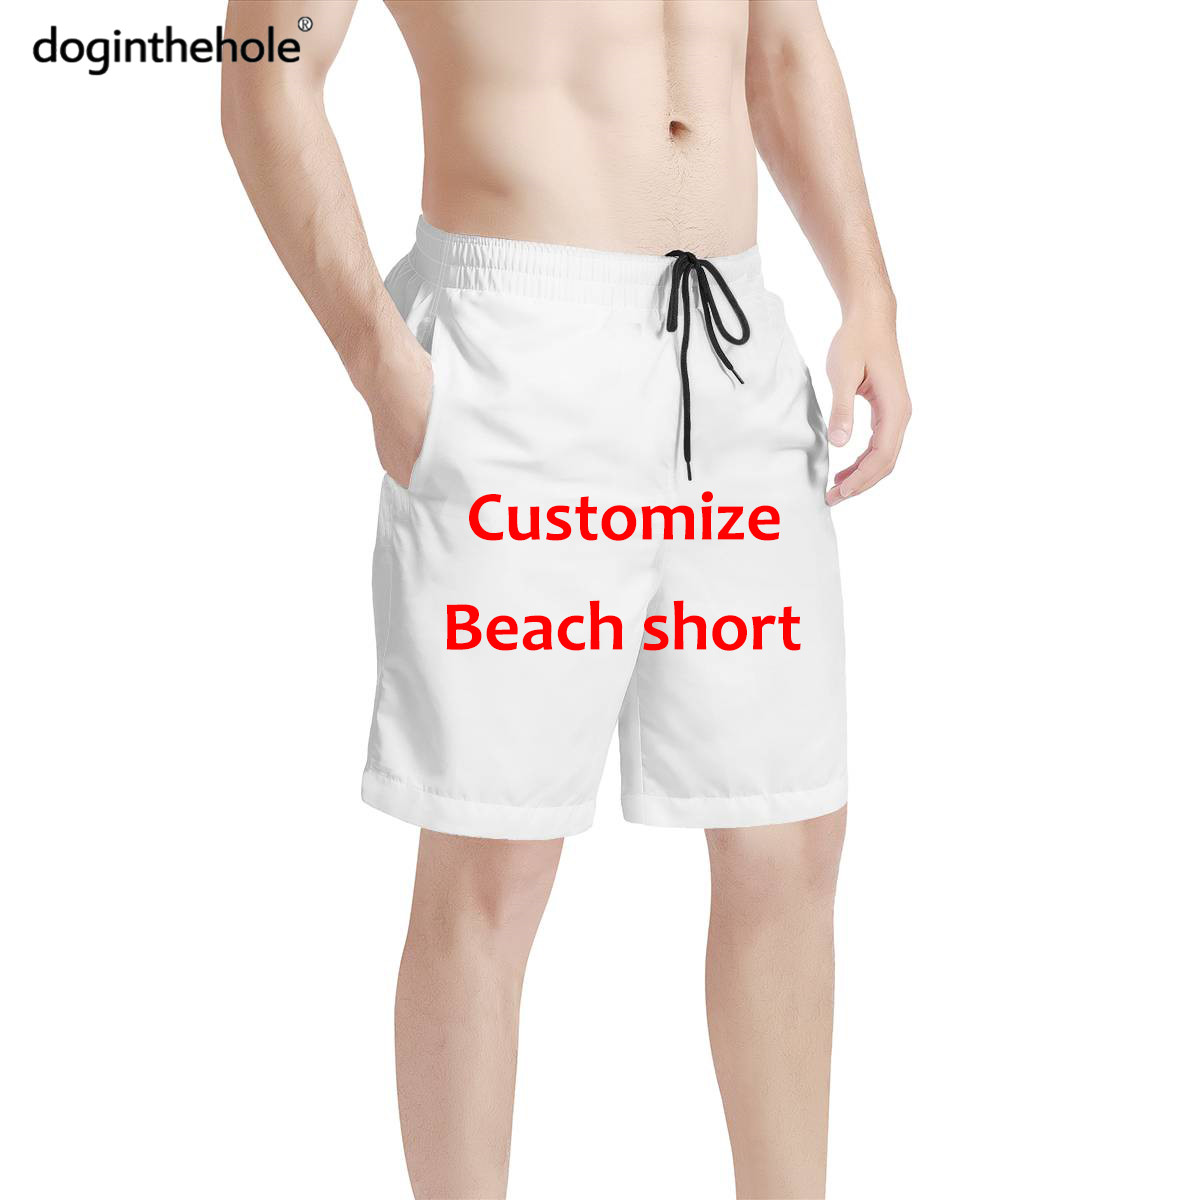 doginthehole Men Summer Beach Swimming Trunk Outdoor Sport Breathable Short Elastic Quick Dry Customize Shorts Home Casual Wear